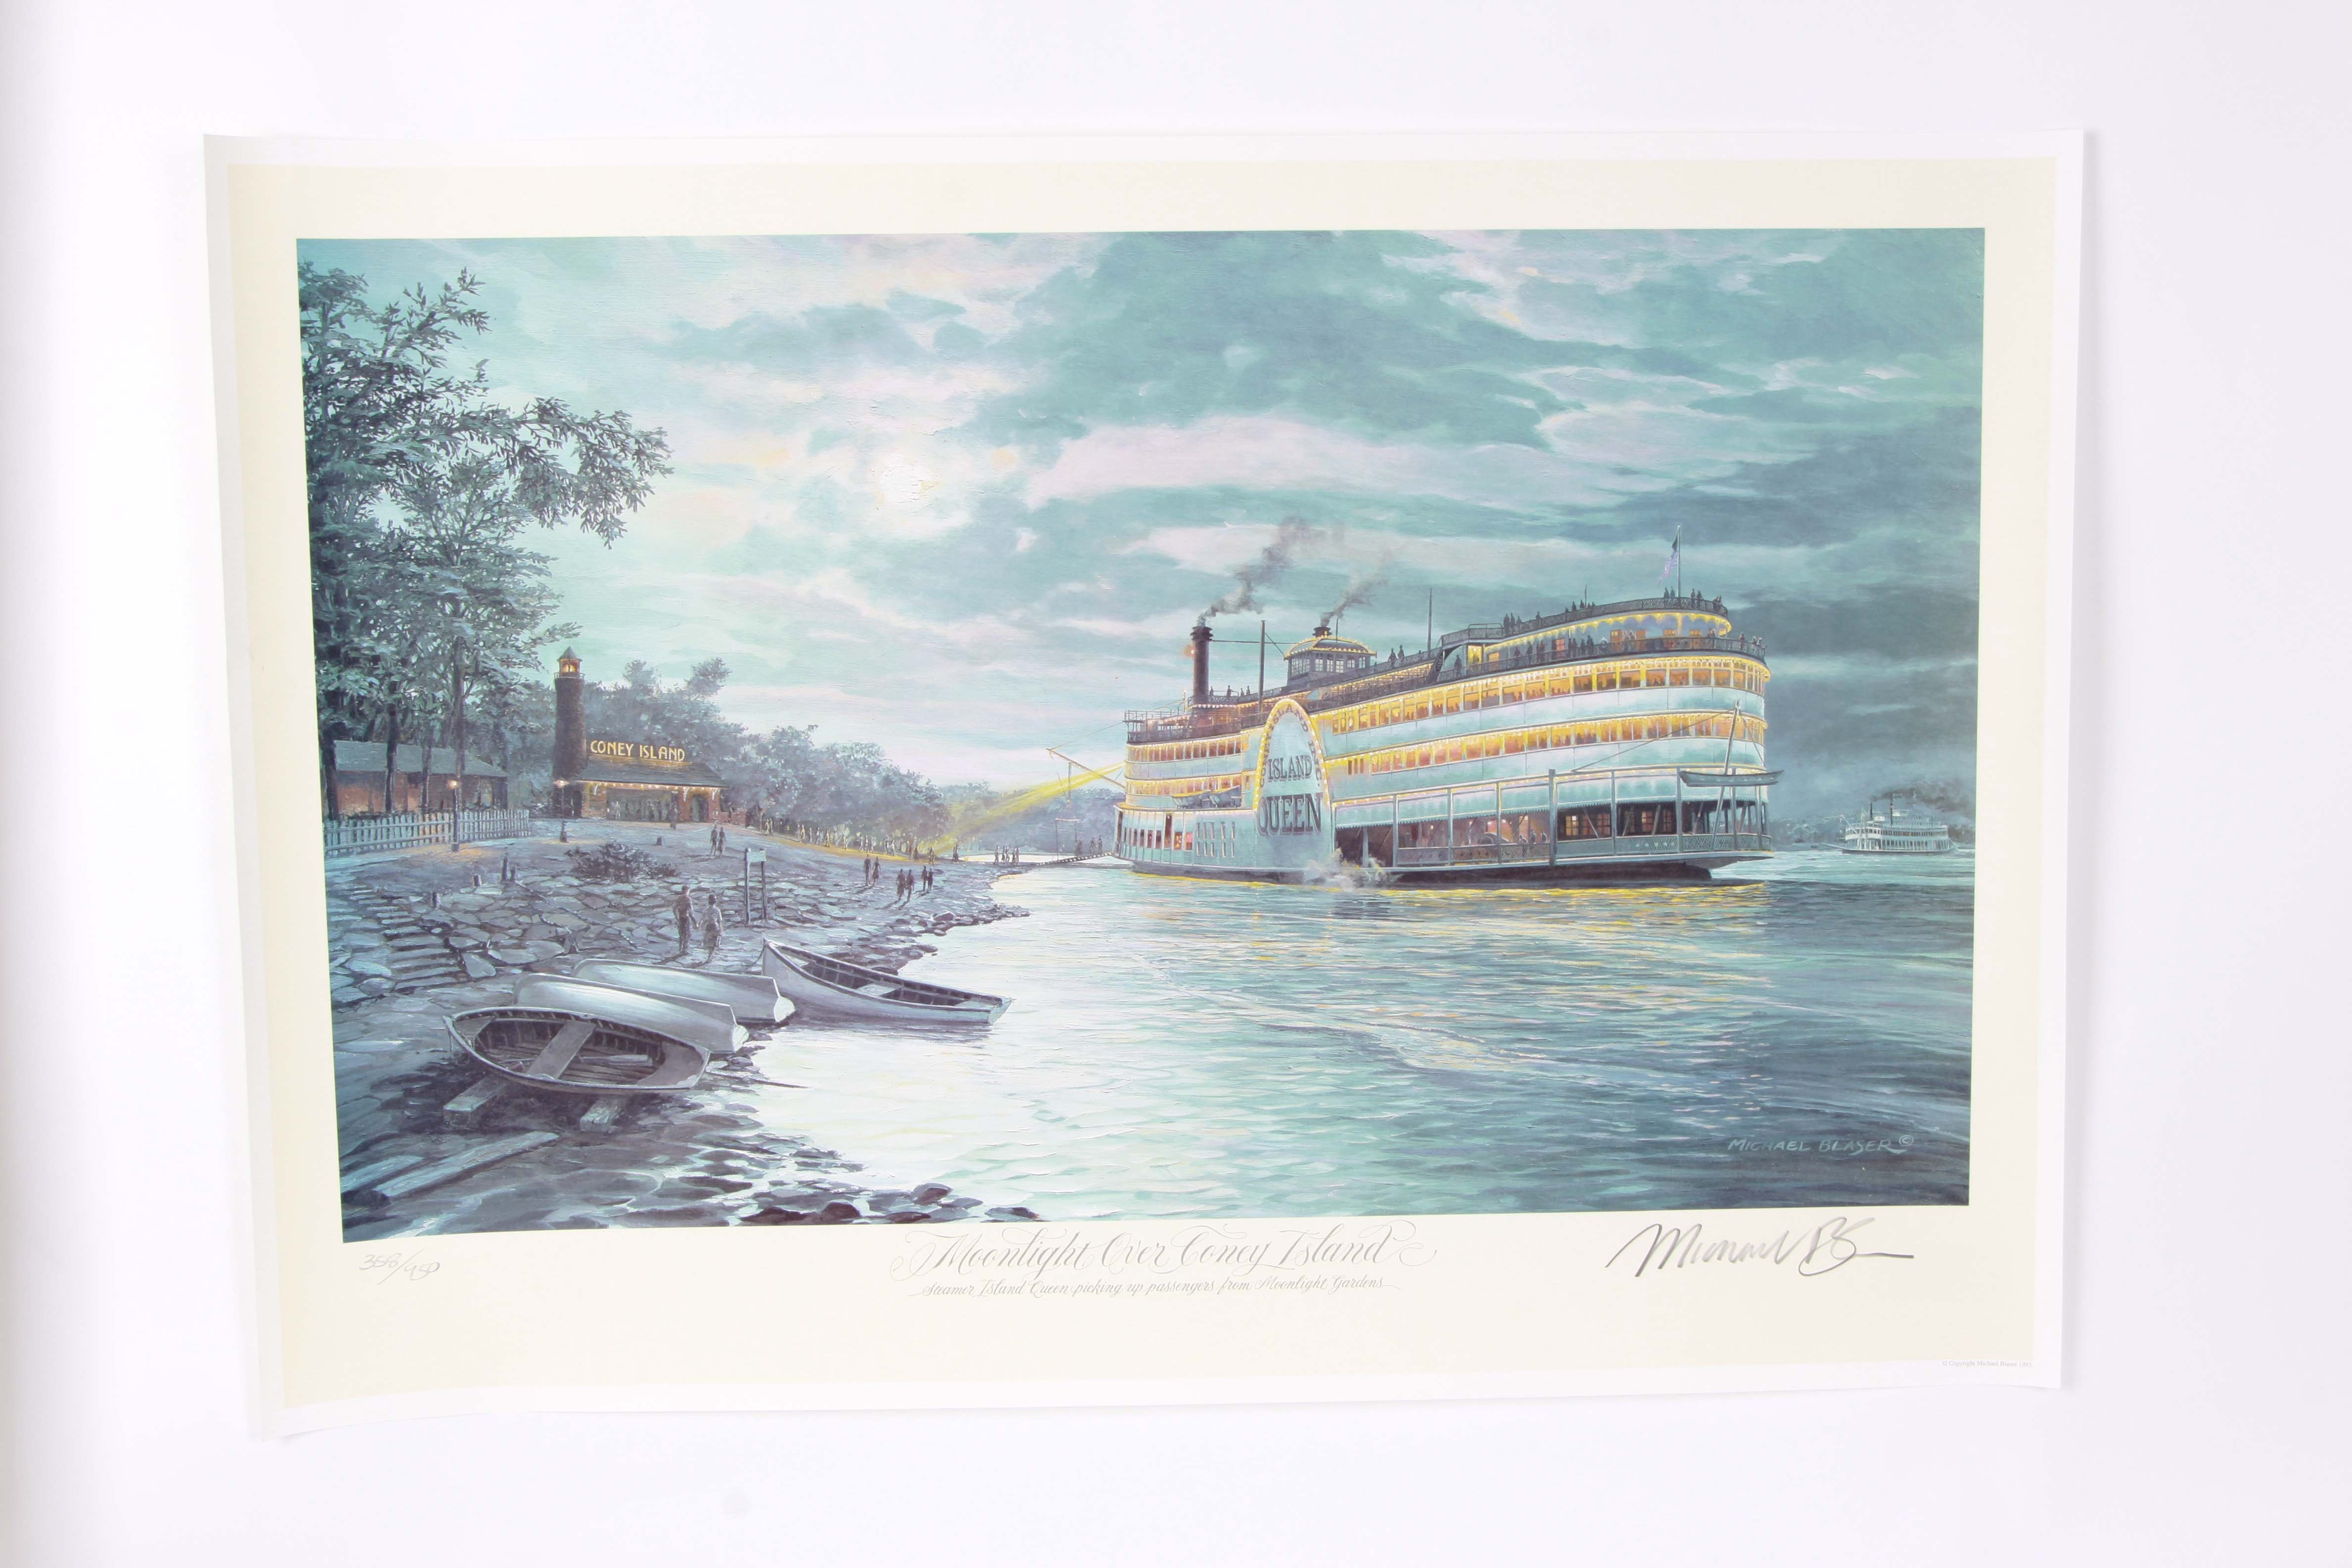 """Michael Blaser Signed Offset Lithograph """"Moonlight Over Coney Island"""""""